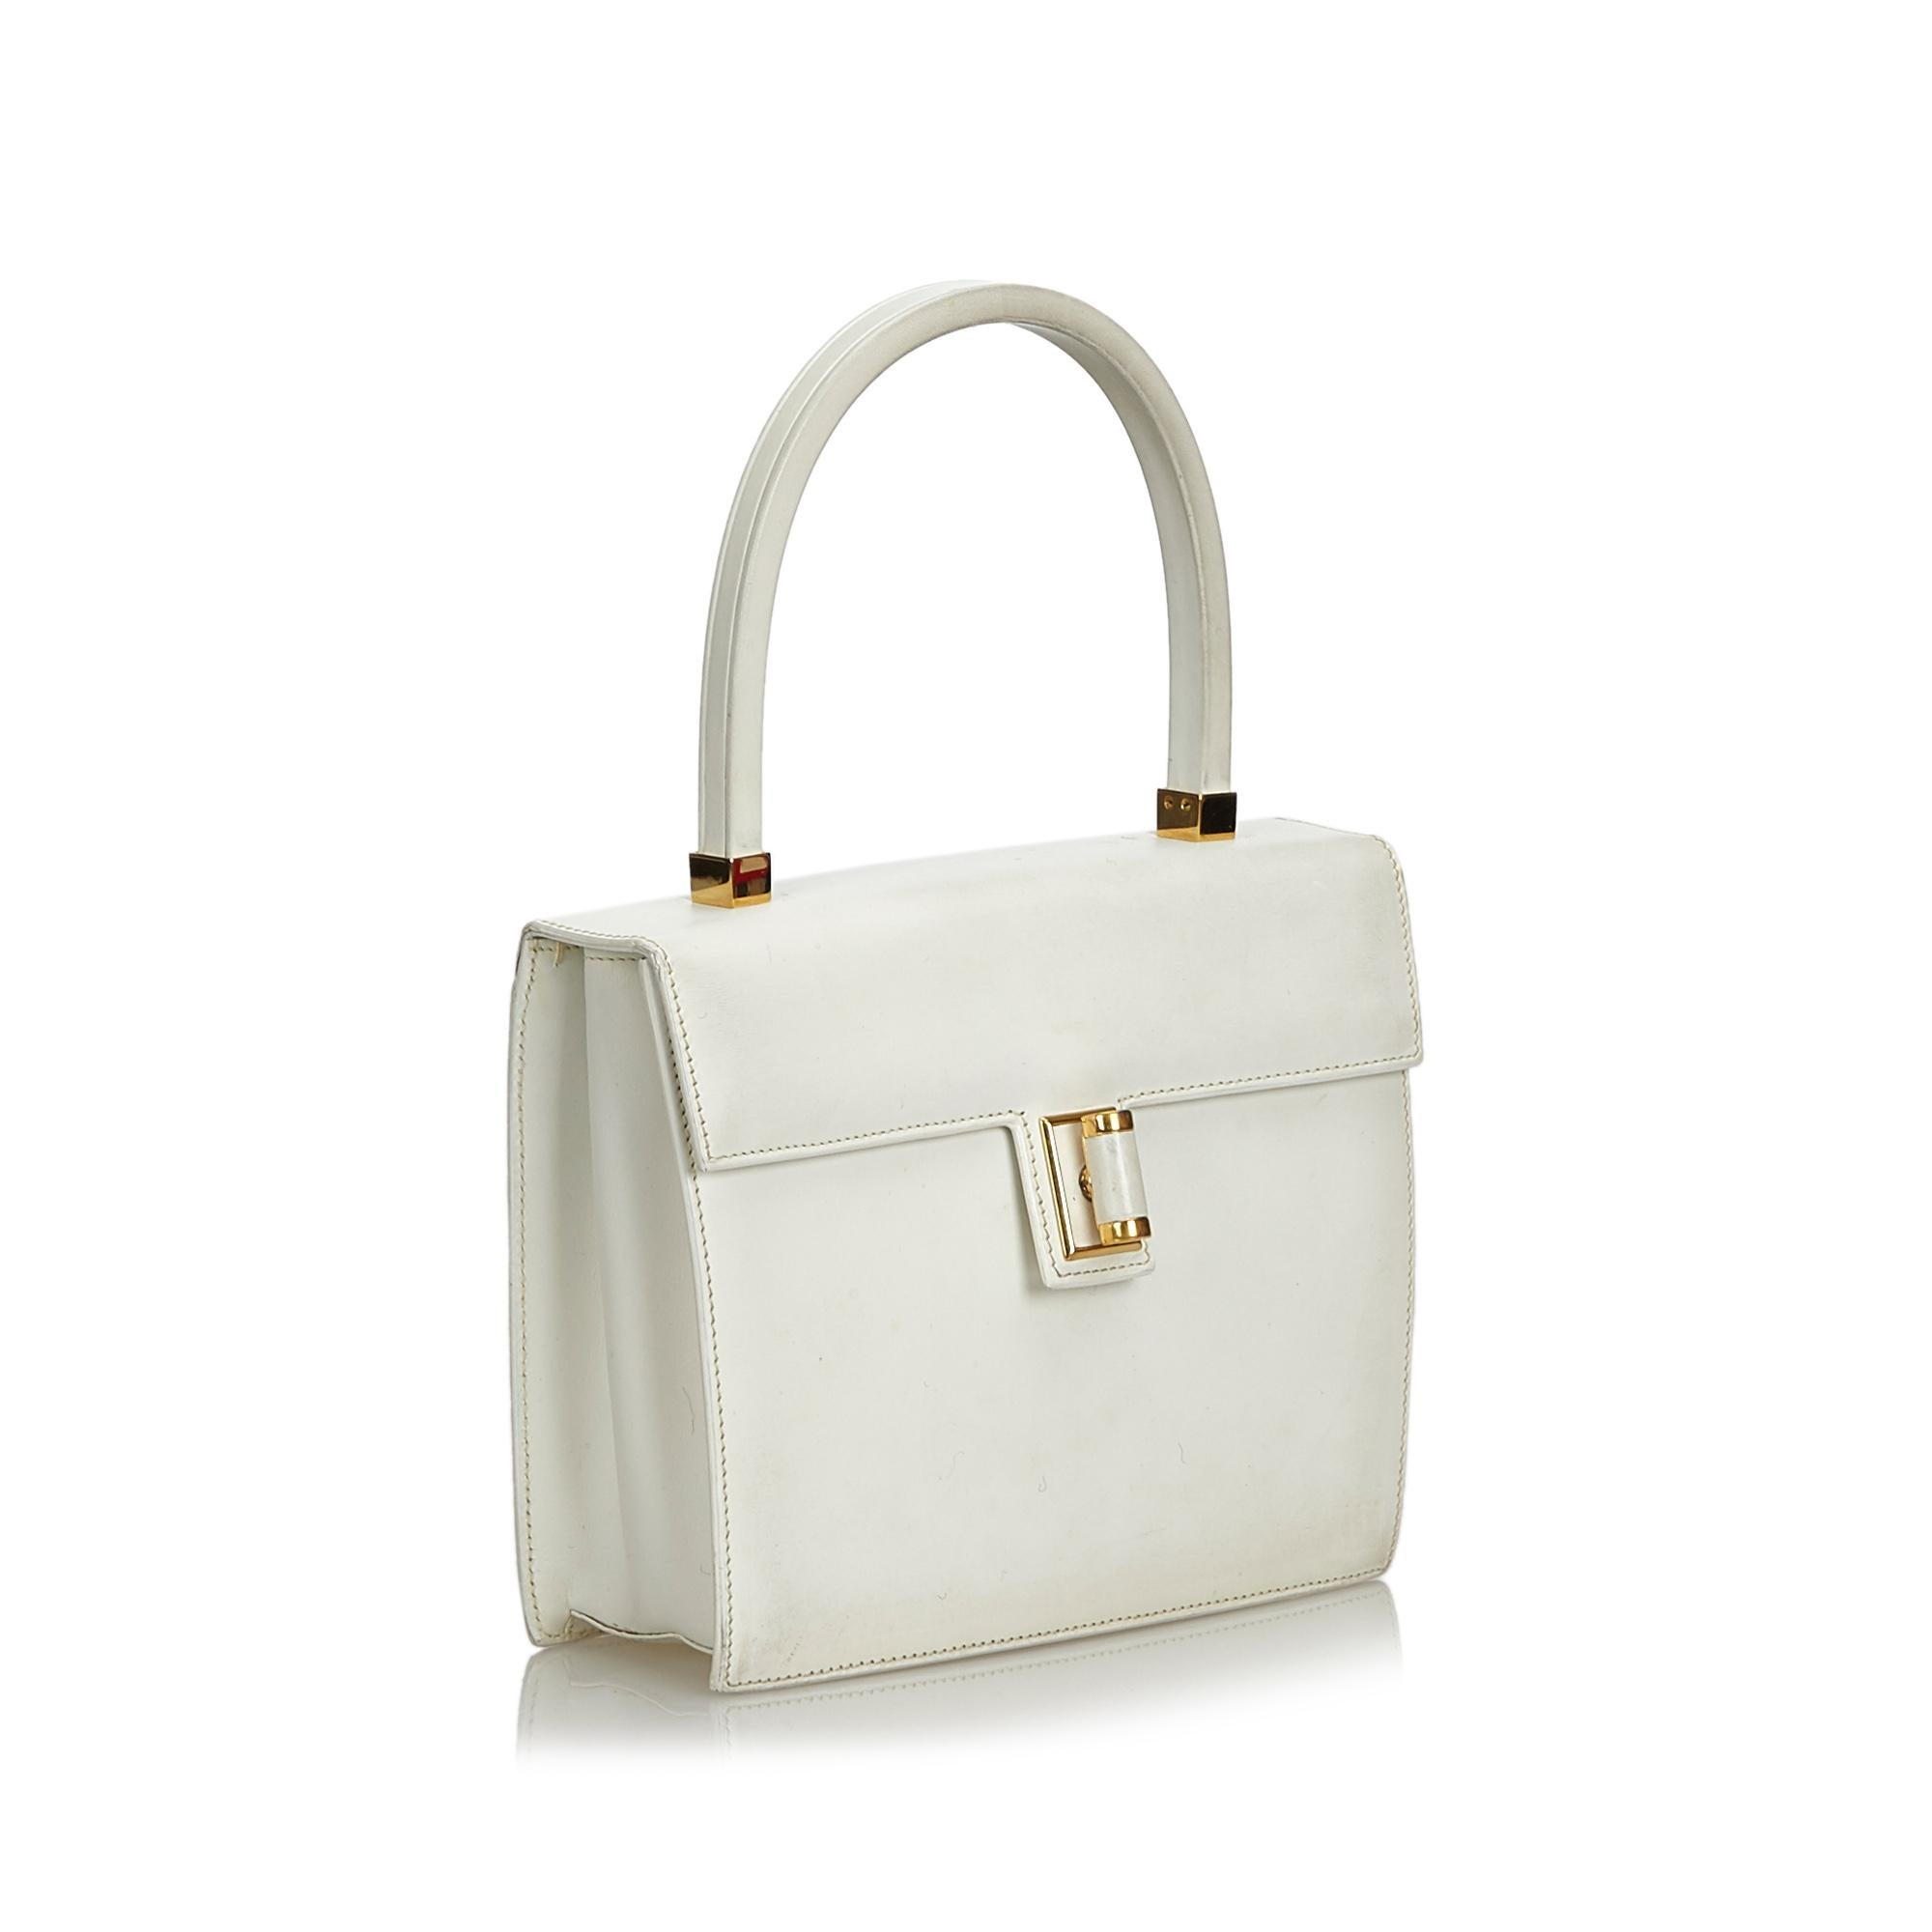 564f195e228 Gucci White Leather Vintage Gucci Handbag Italy w  Dust BagBox For Sale at  1stdibs